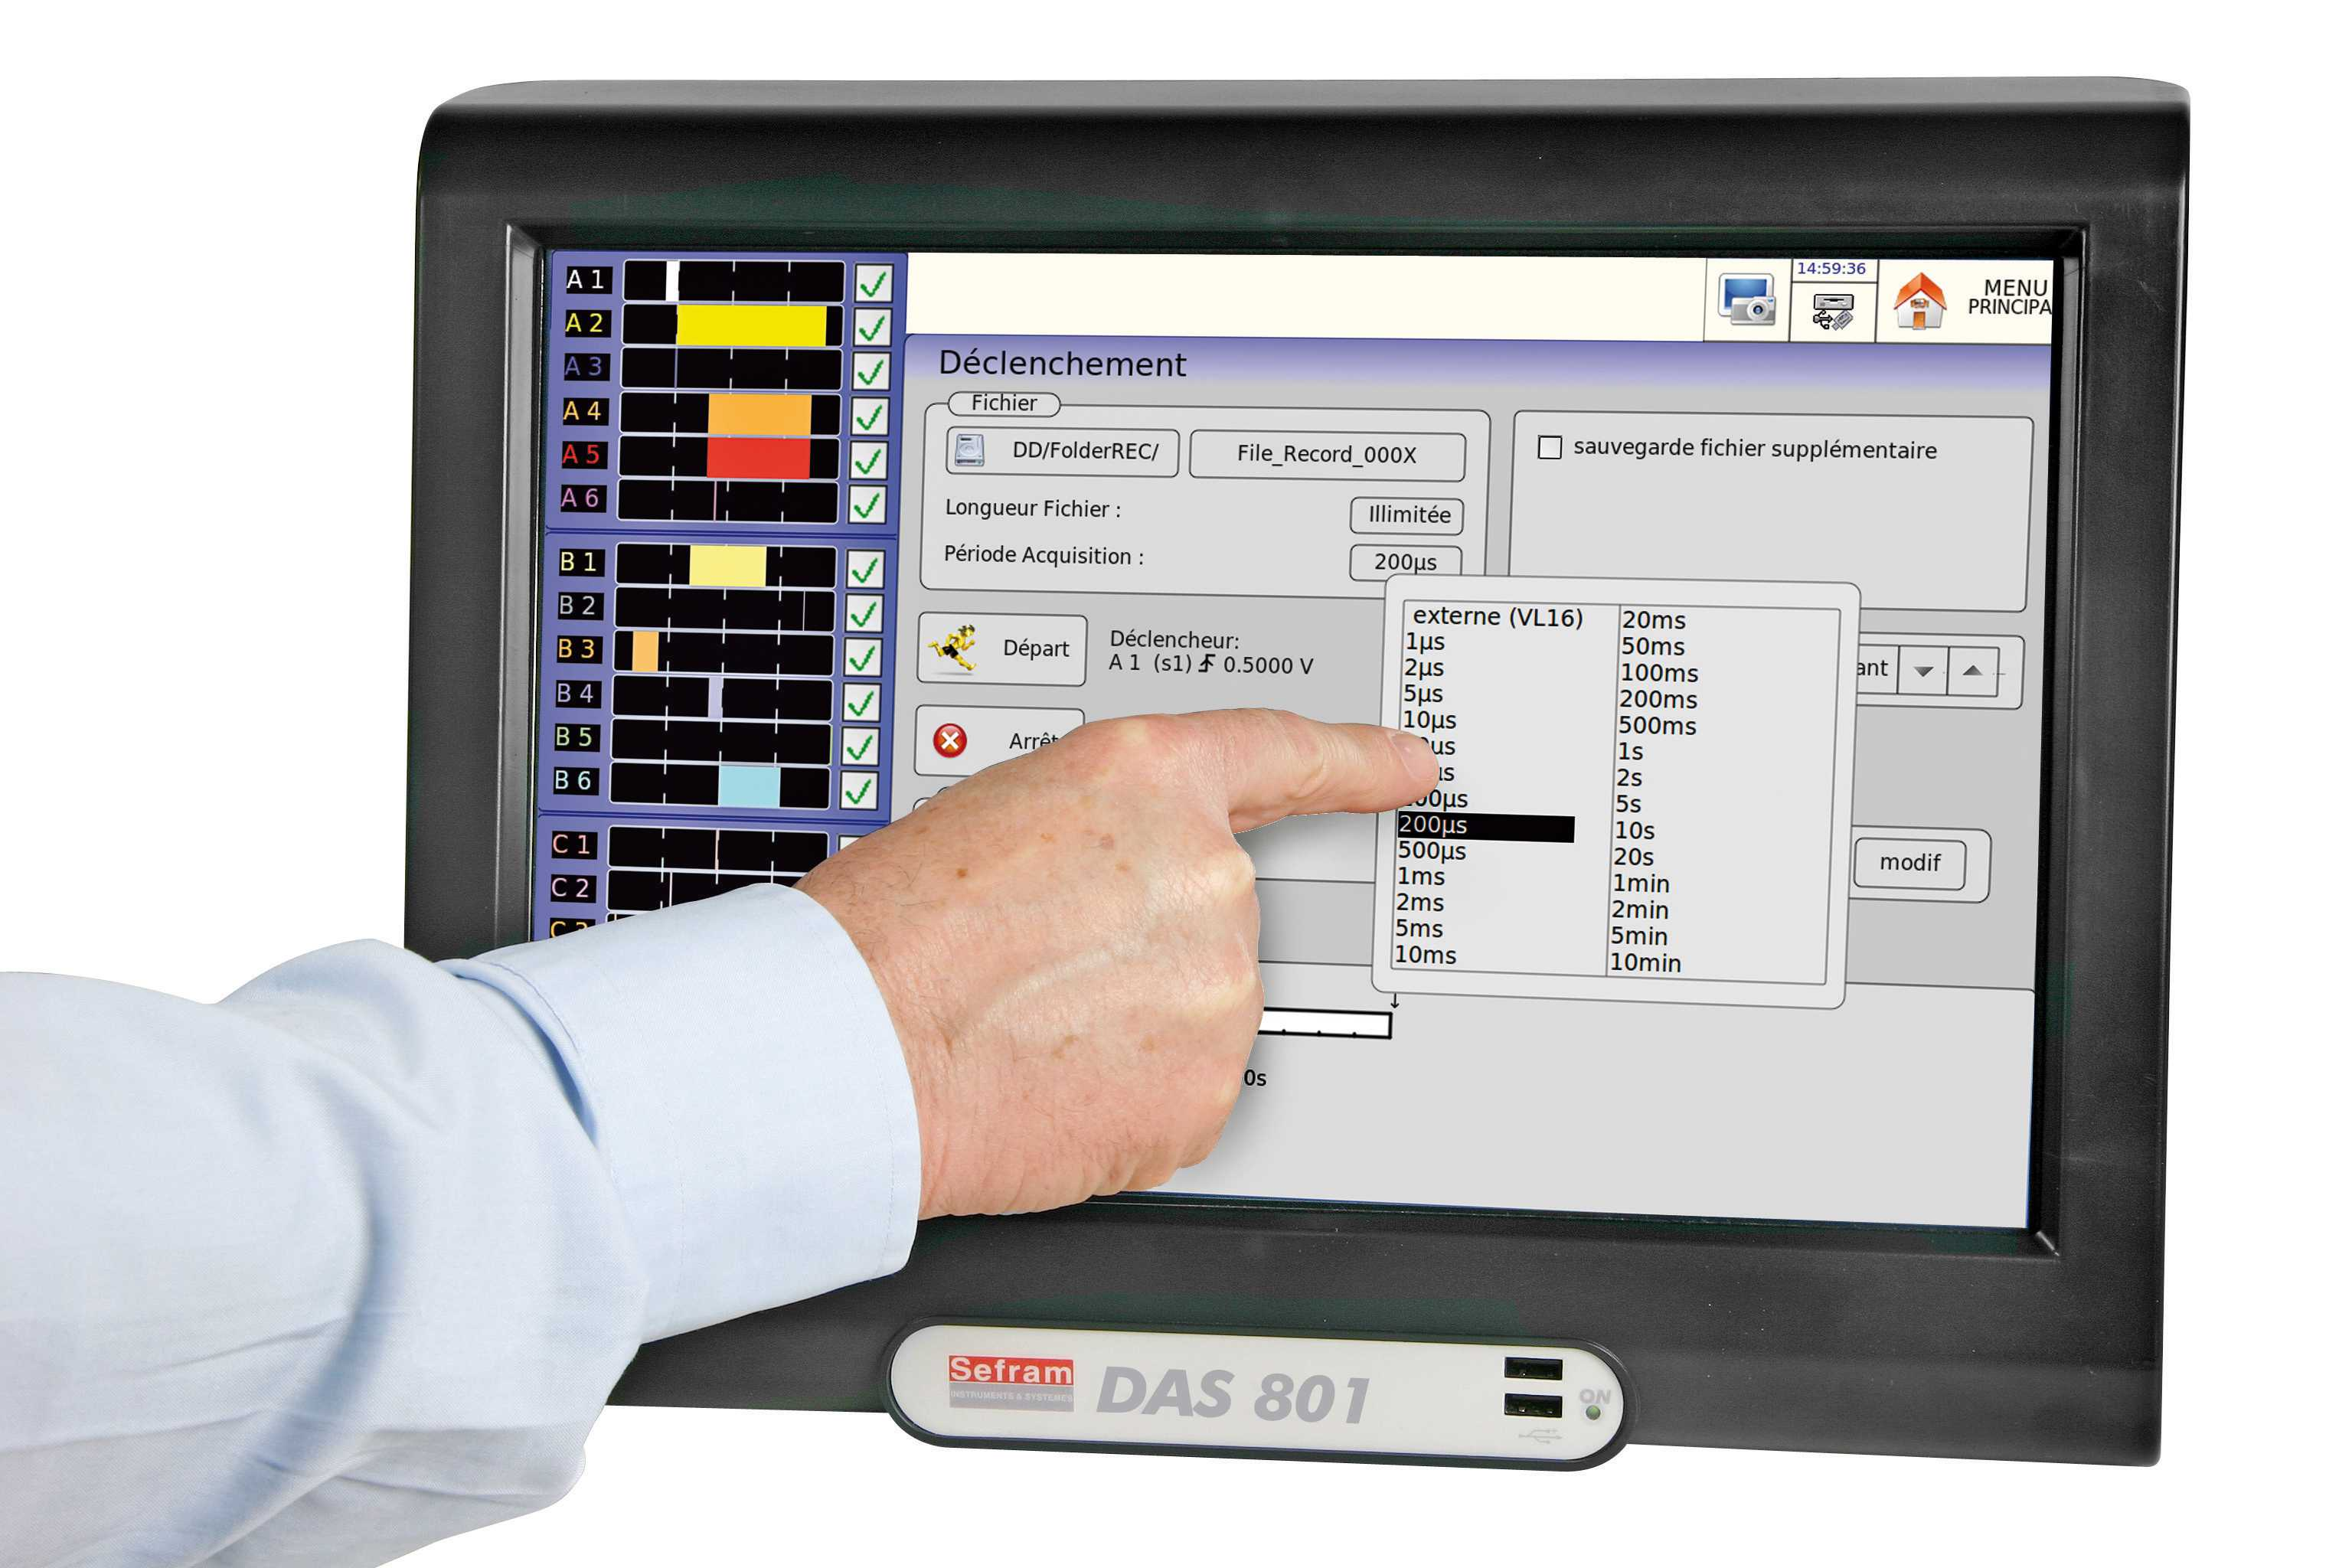 Loggere (inregistratoare) Sefram DAS801SV  - 12 multiplexed channels paperless recorder, panoramic touch screen, no fan